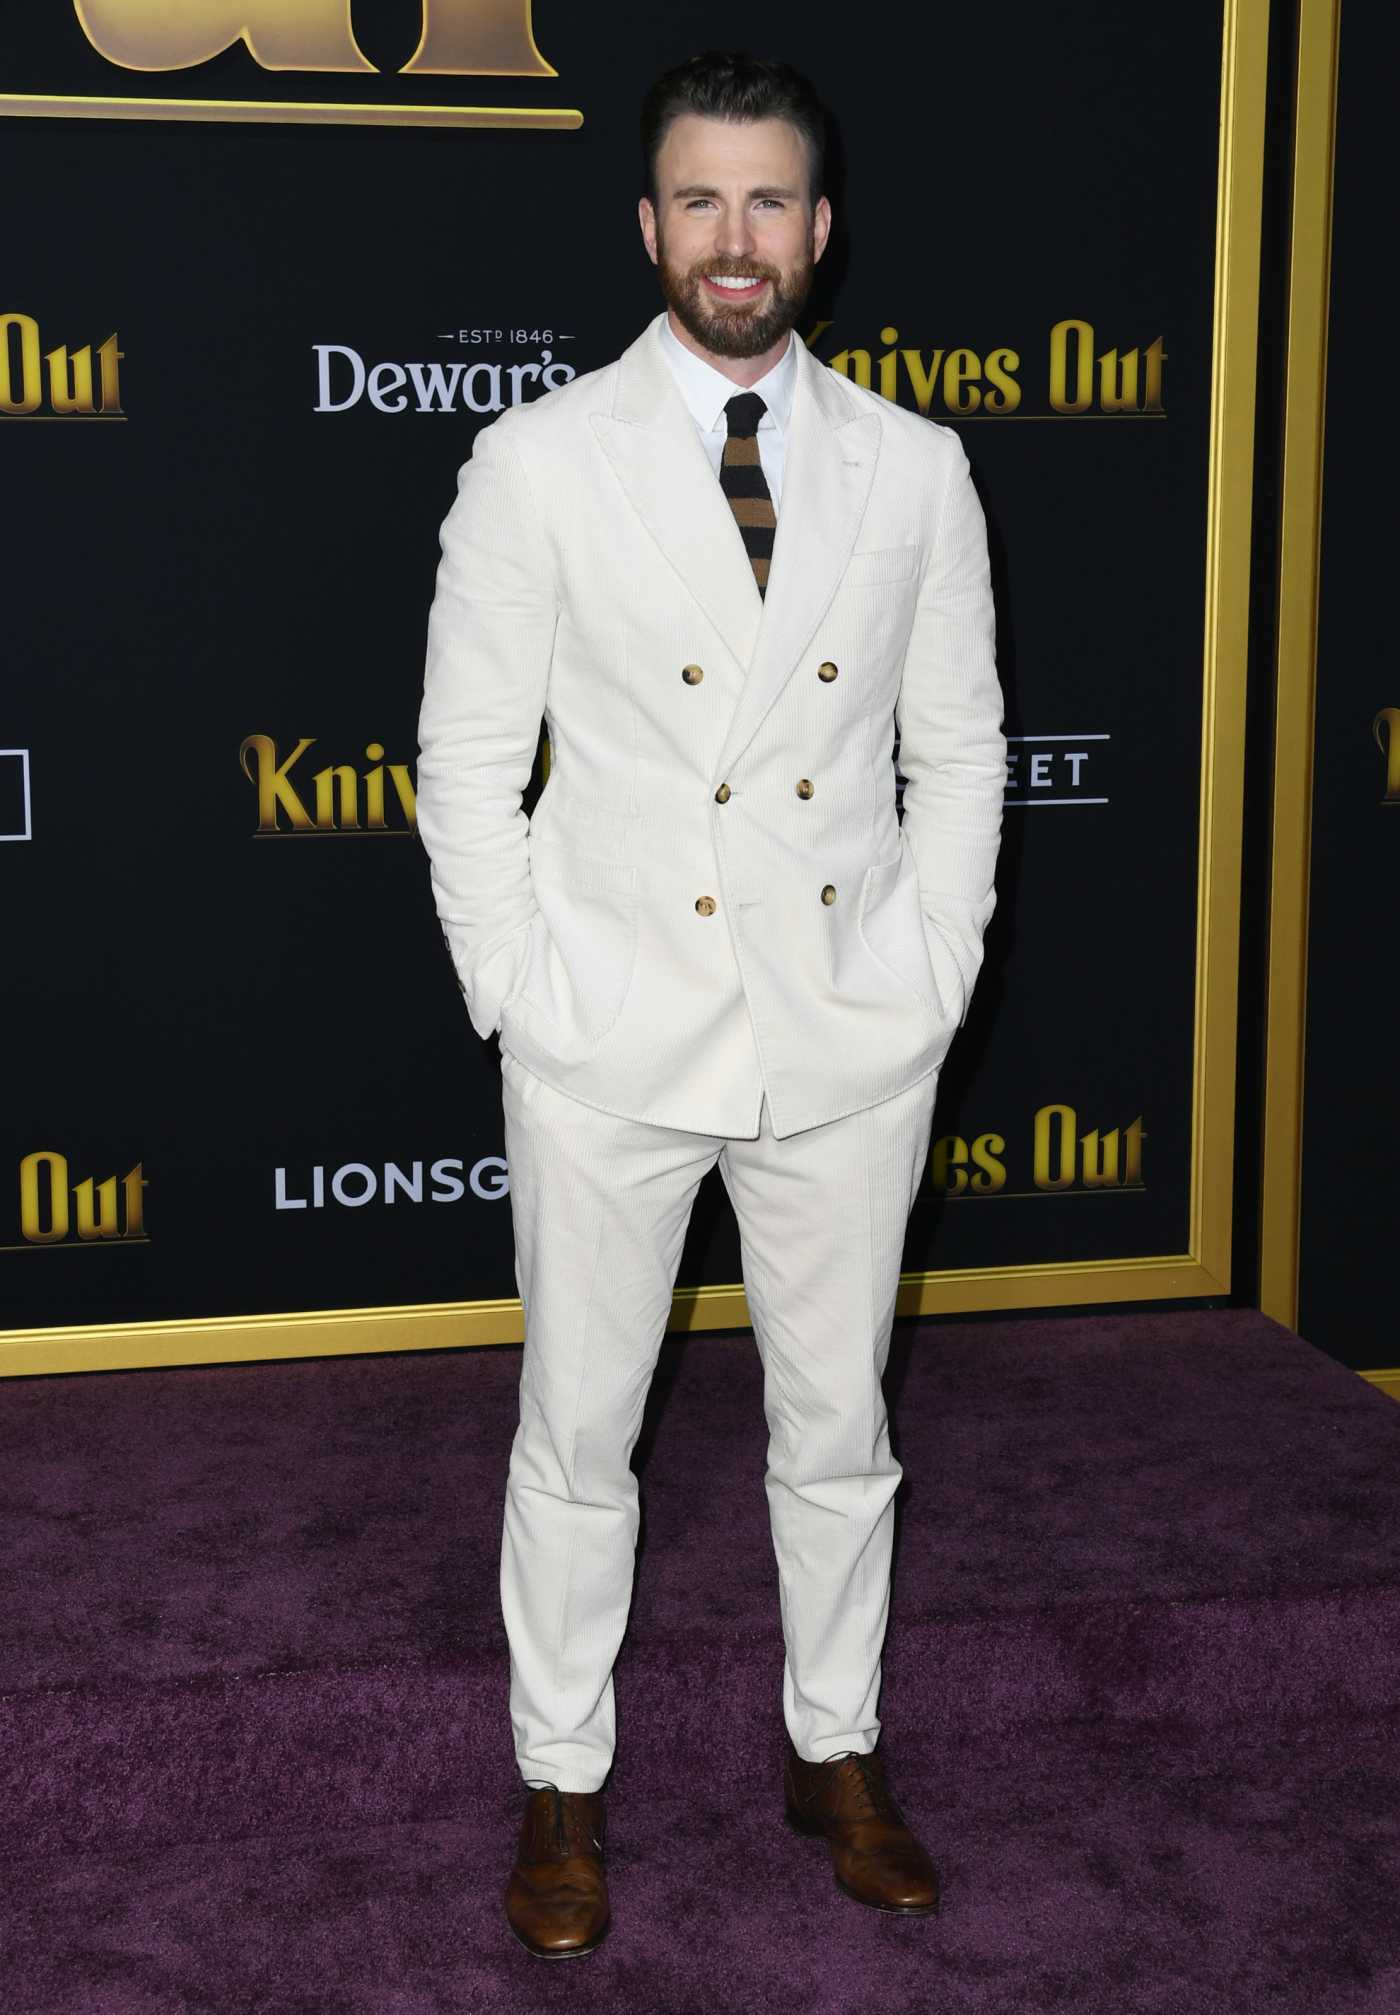 Chris Evans Attends the Knives Out Premiere in Los Angeles 11/14/2019